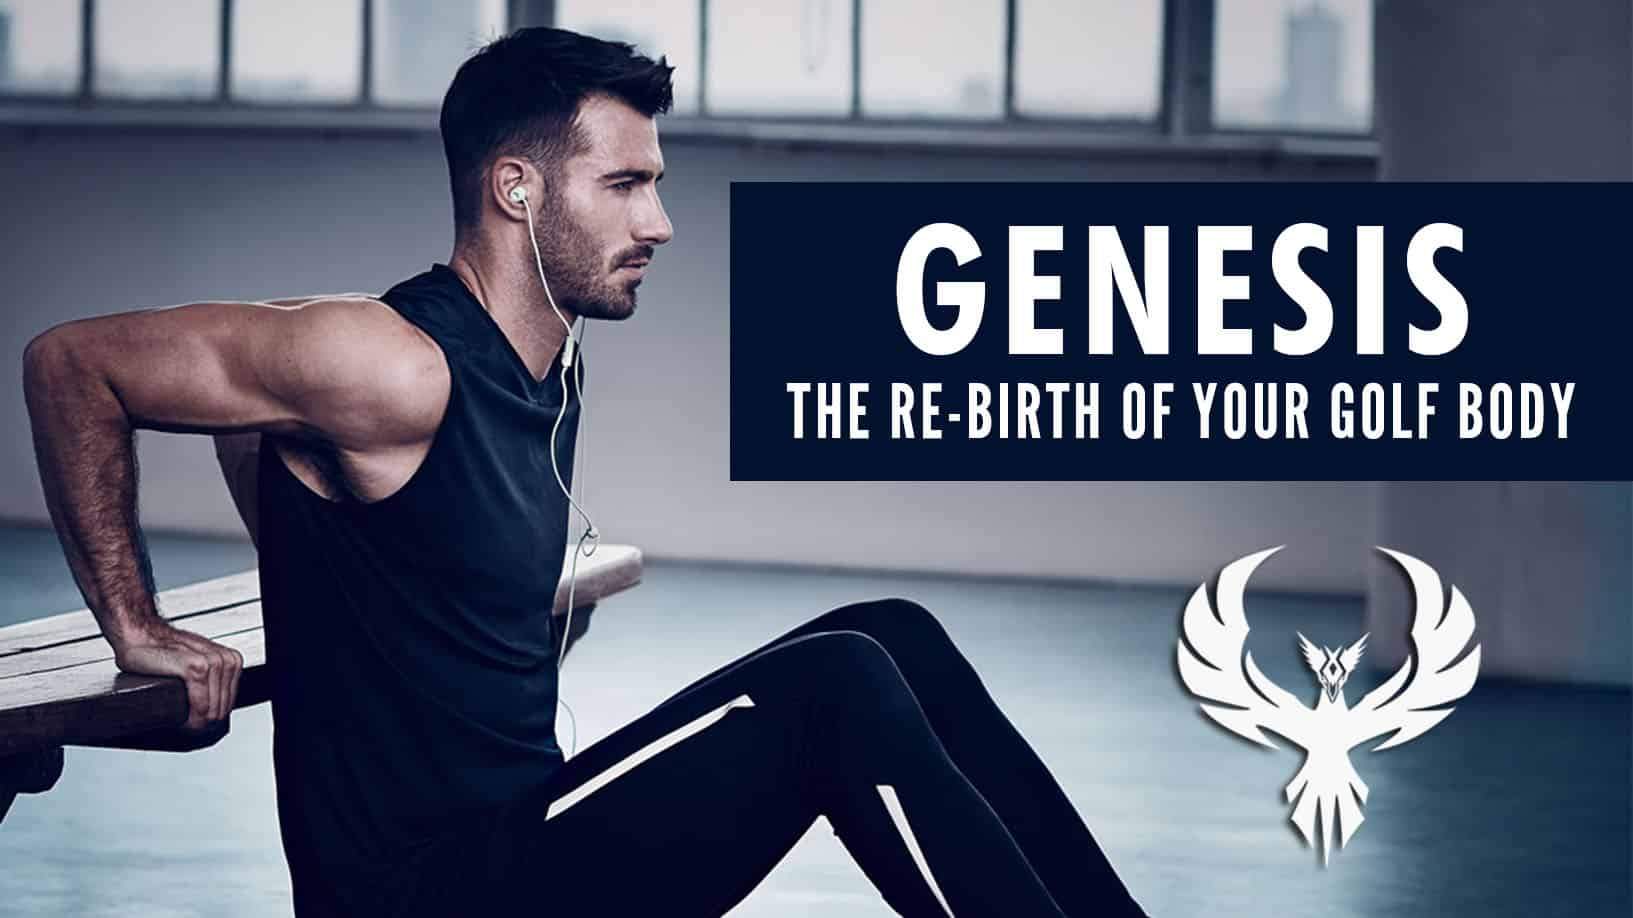 Genesis: Re-Birth of Your Golf Body